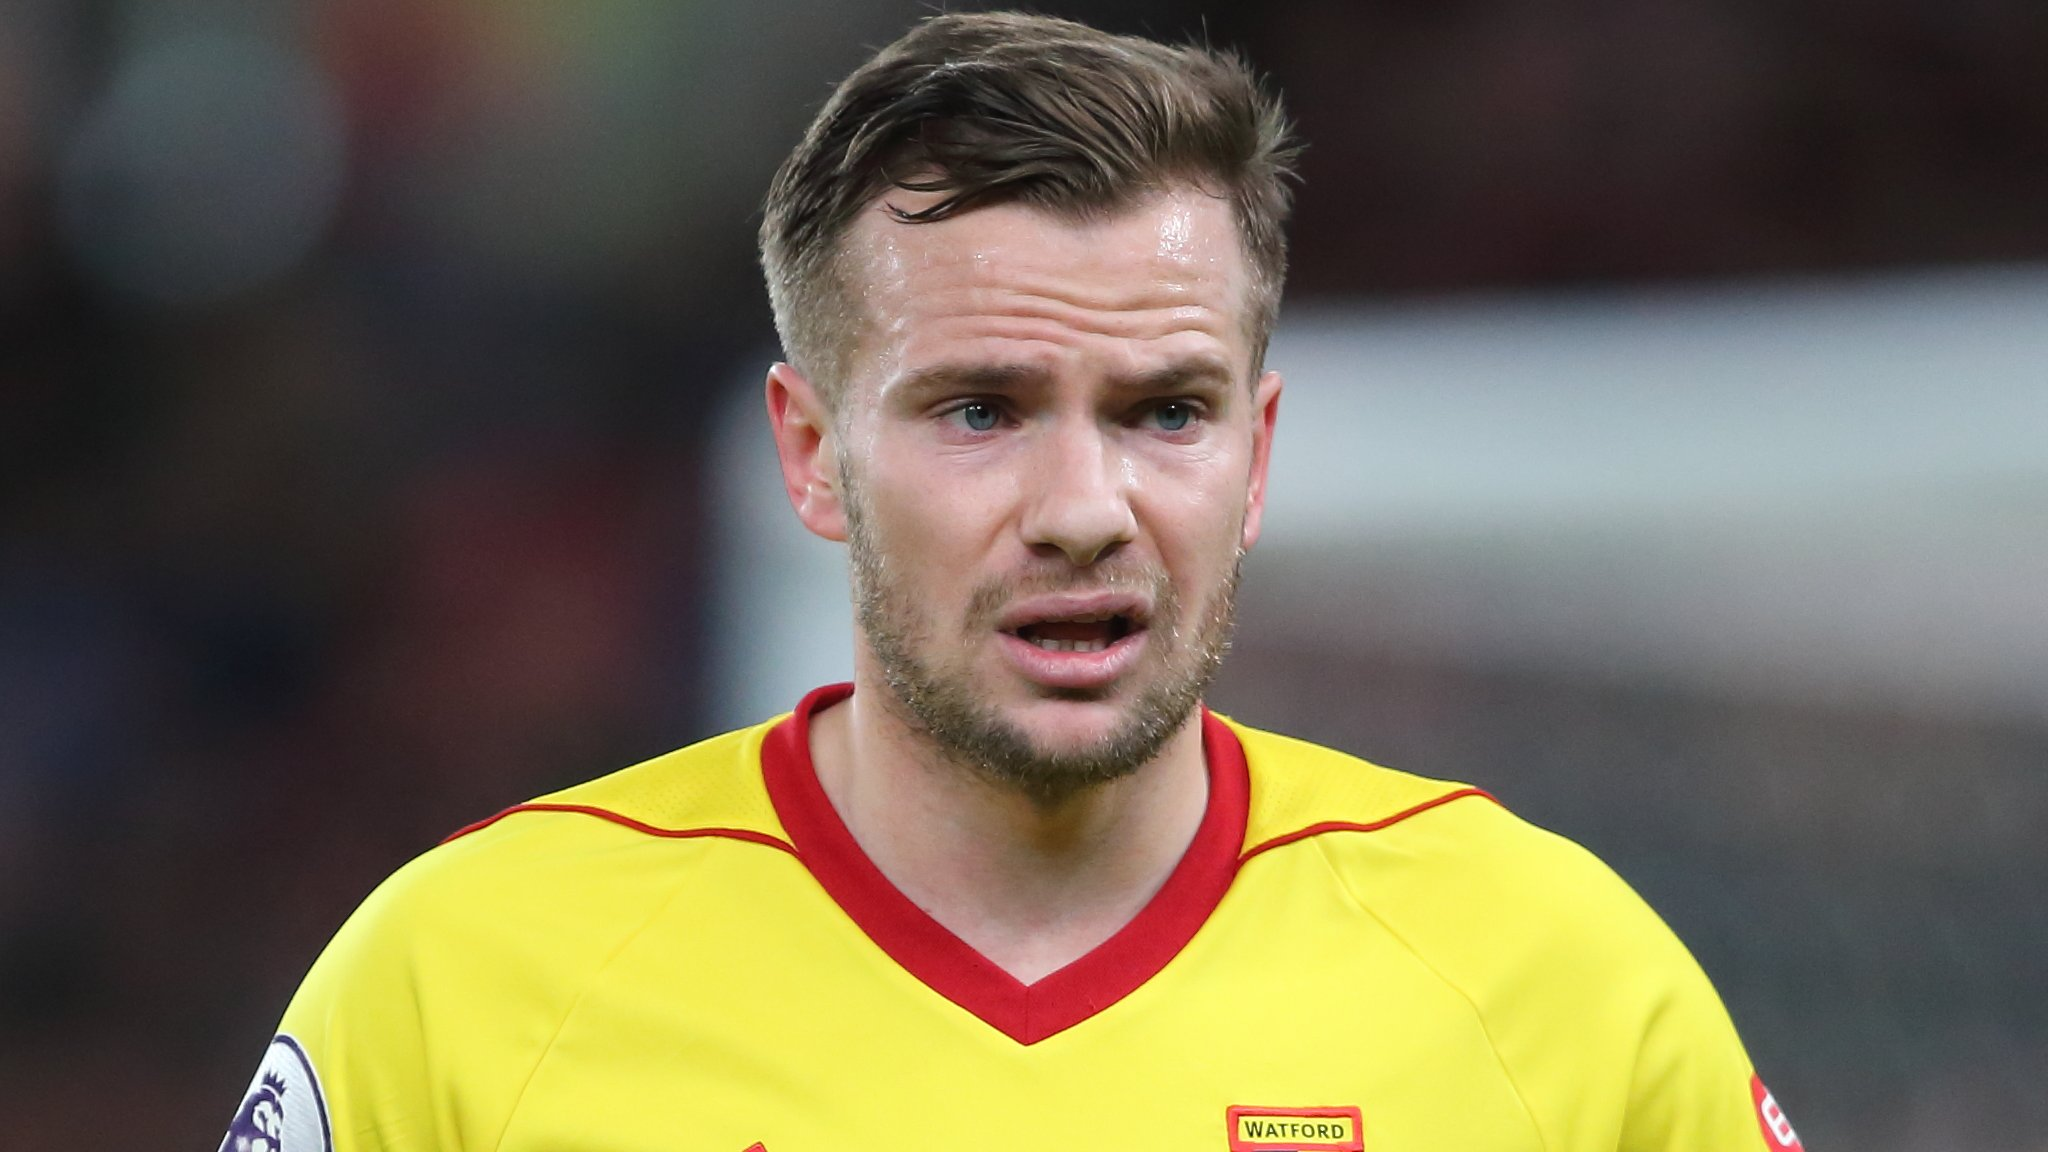 Tom Cleverley: Watford midfielder has surgery on Achilles problem